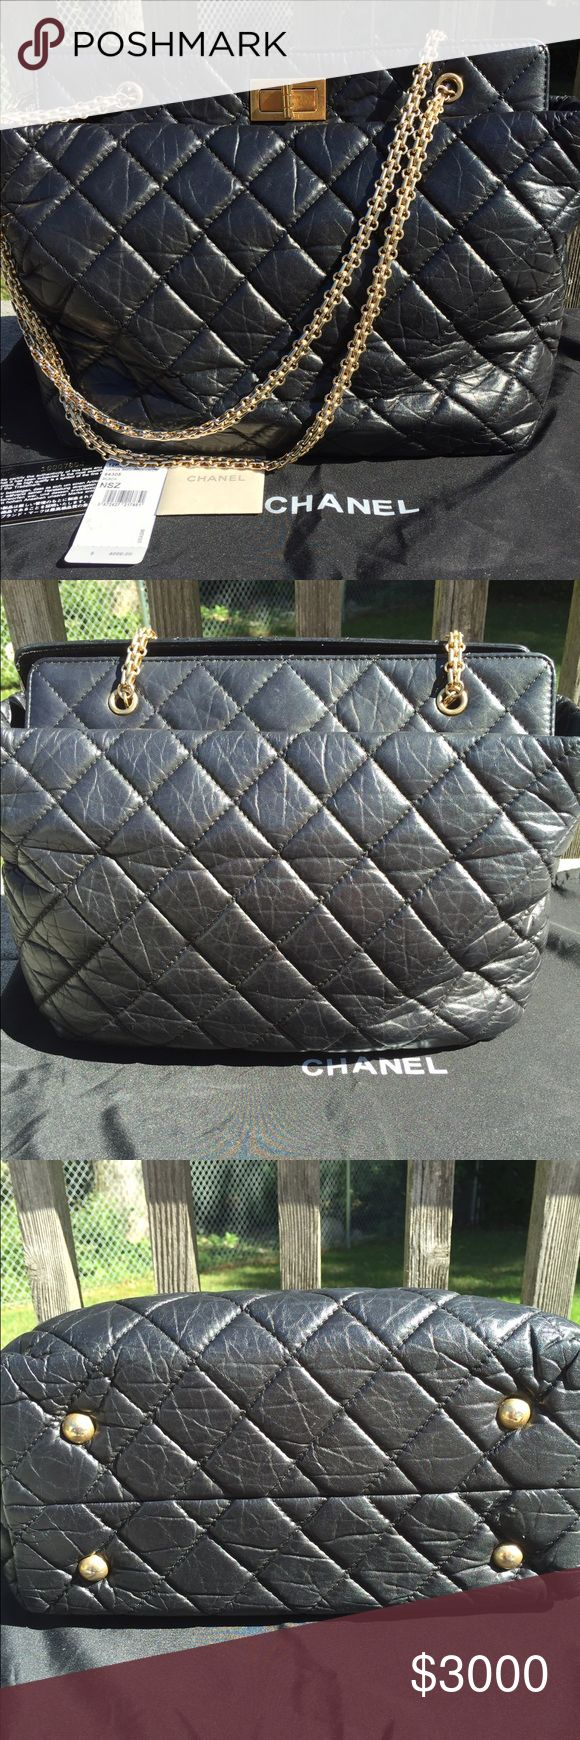 """Chanel Large Shopping <30 cm 100% Authentic Chanel bag . Only a few years old and in amazing condition. The hardware could use some shinning  and there are a few spots that a professional cleaner could probably get out. The mark on the bottom feels like a sticker was there and I was trying to get it off but am afraid I might make a mark in the leather. One mark on inside that looks like possibly lipstick. More pictures in listing # 2   The height is 11""""  across is 14""""  the gold strap drop is…"""